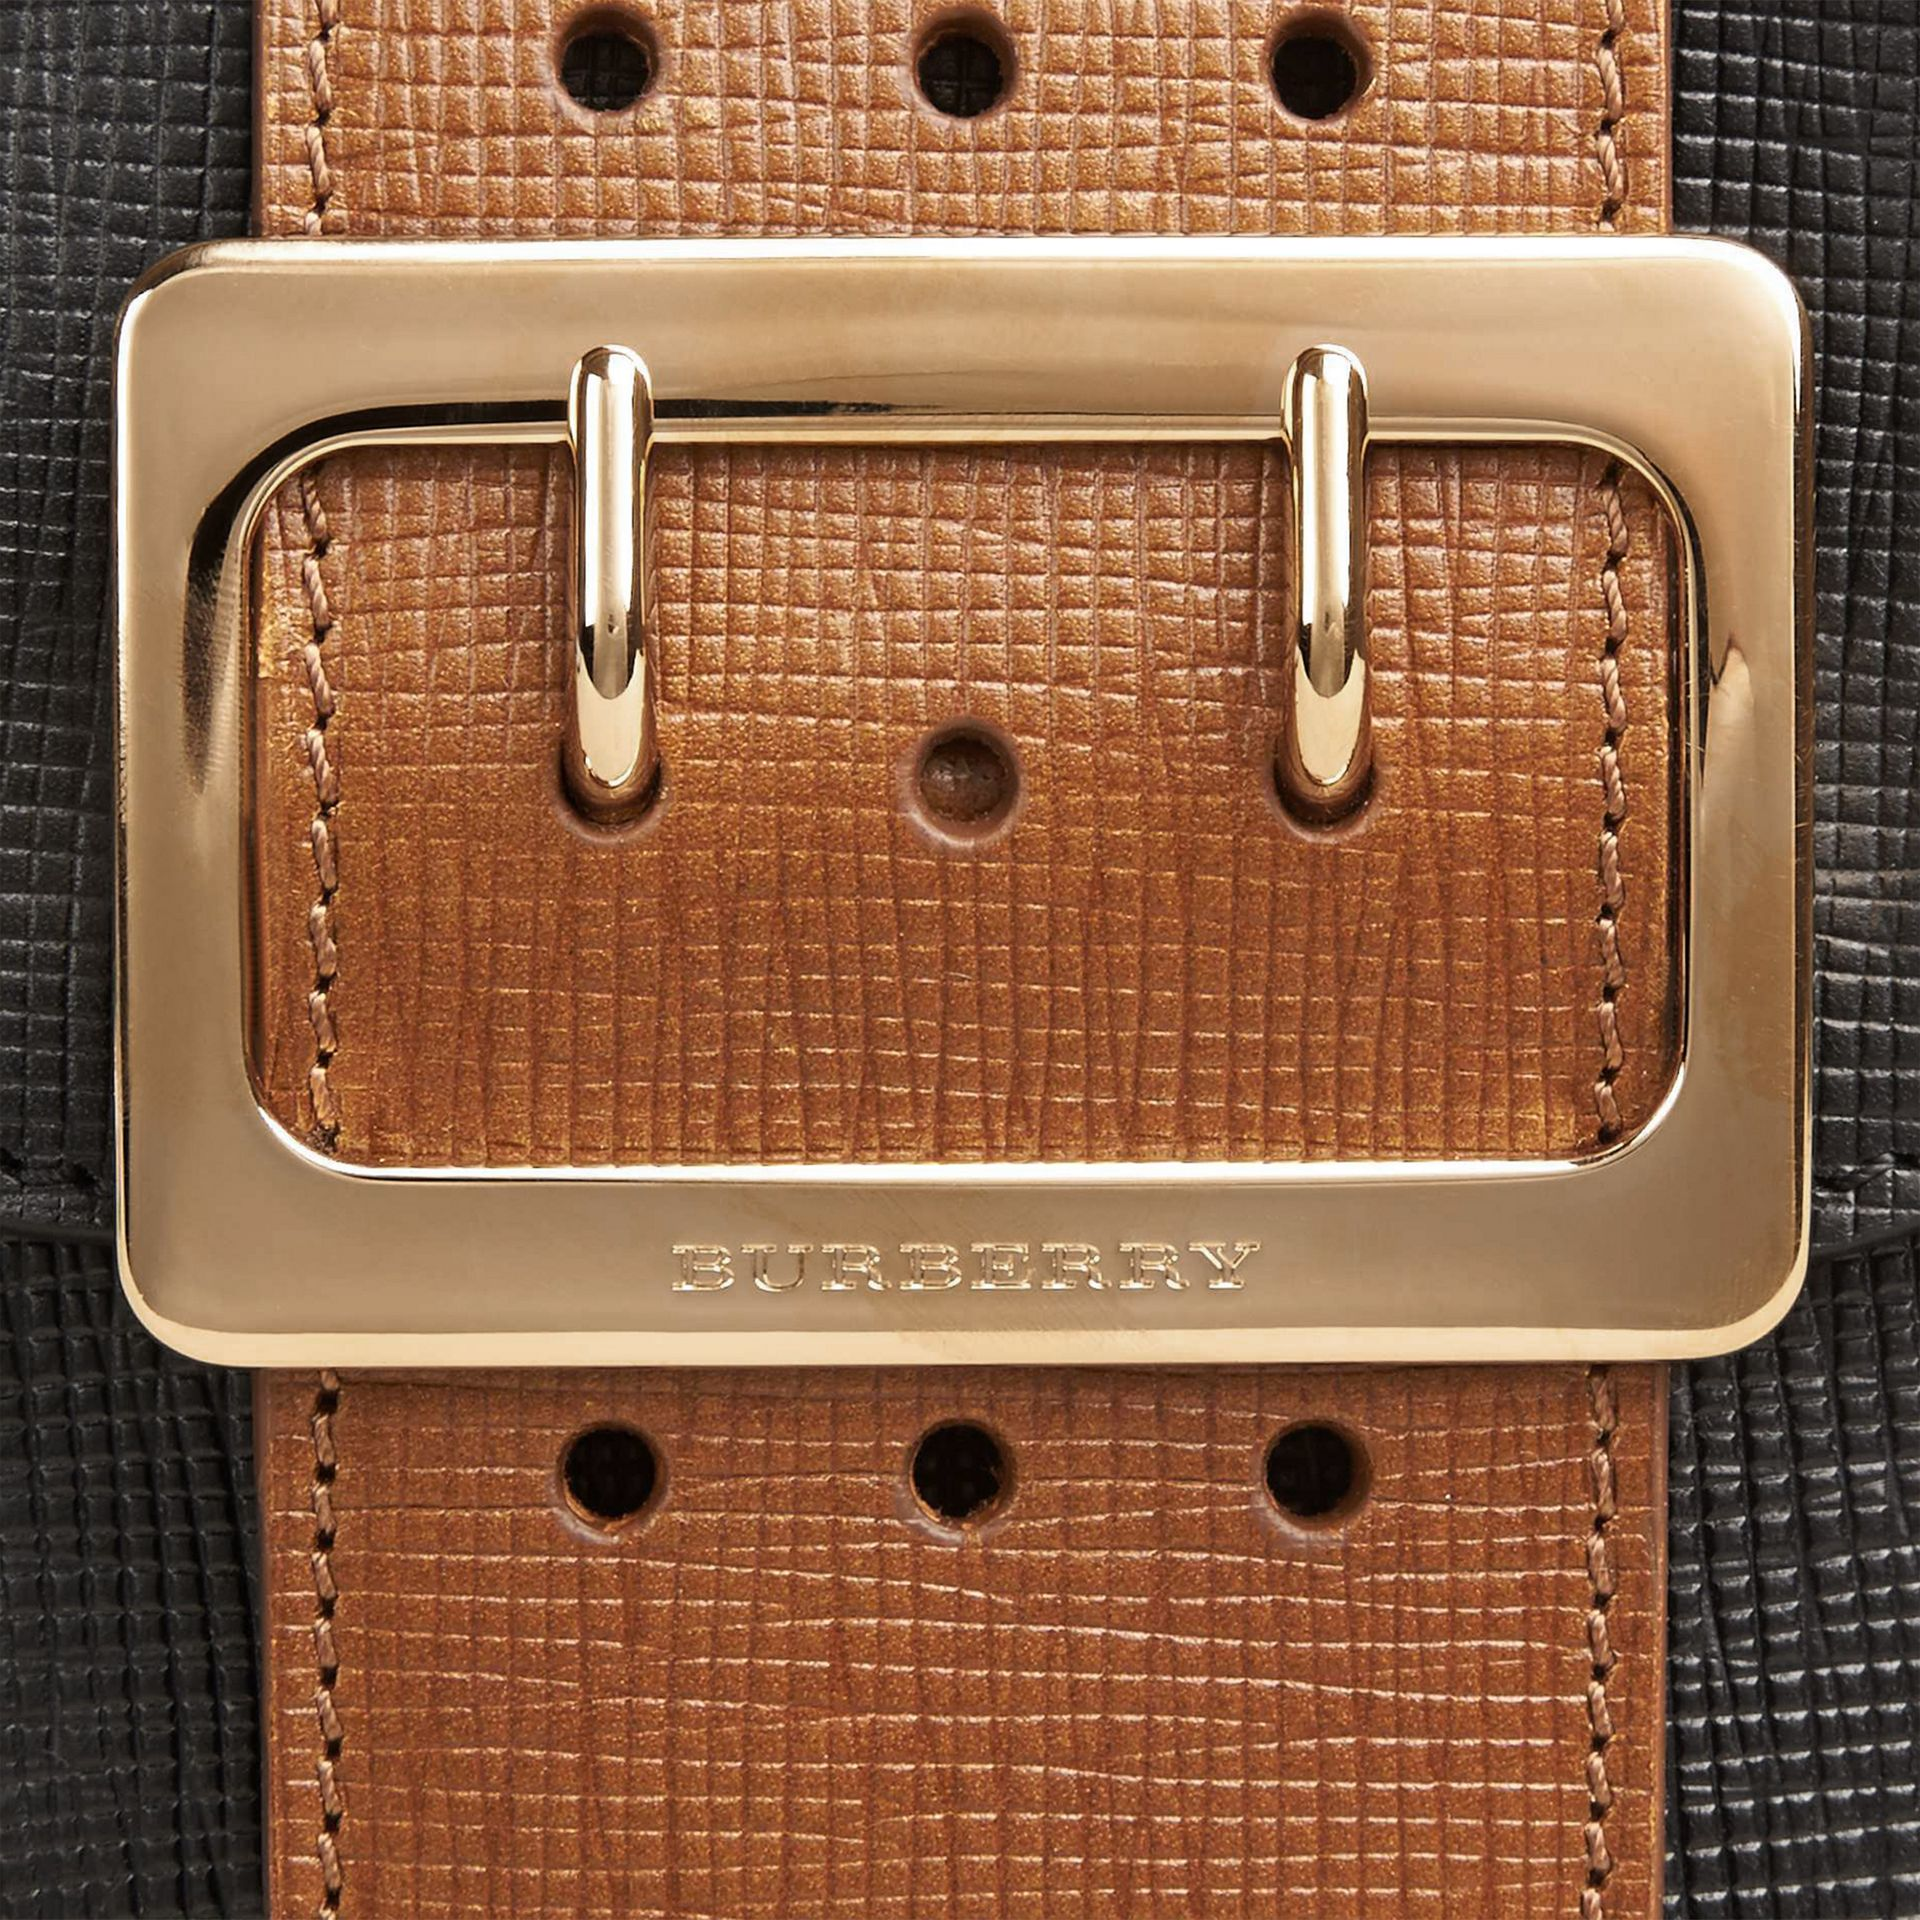 Nero Borsa The Buckle quadrata piccola in pelle e motivo House check Nero - immagine della galleria 2